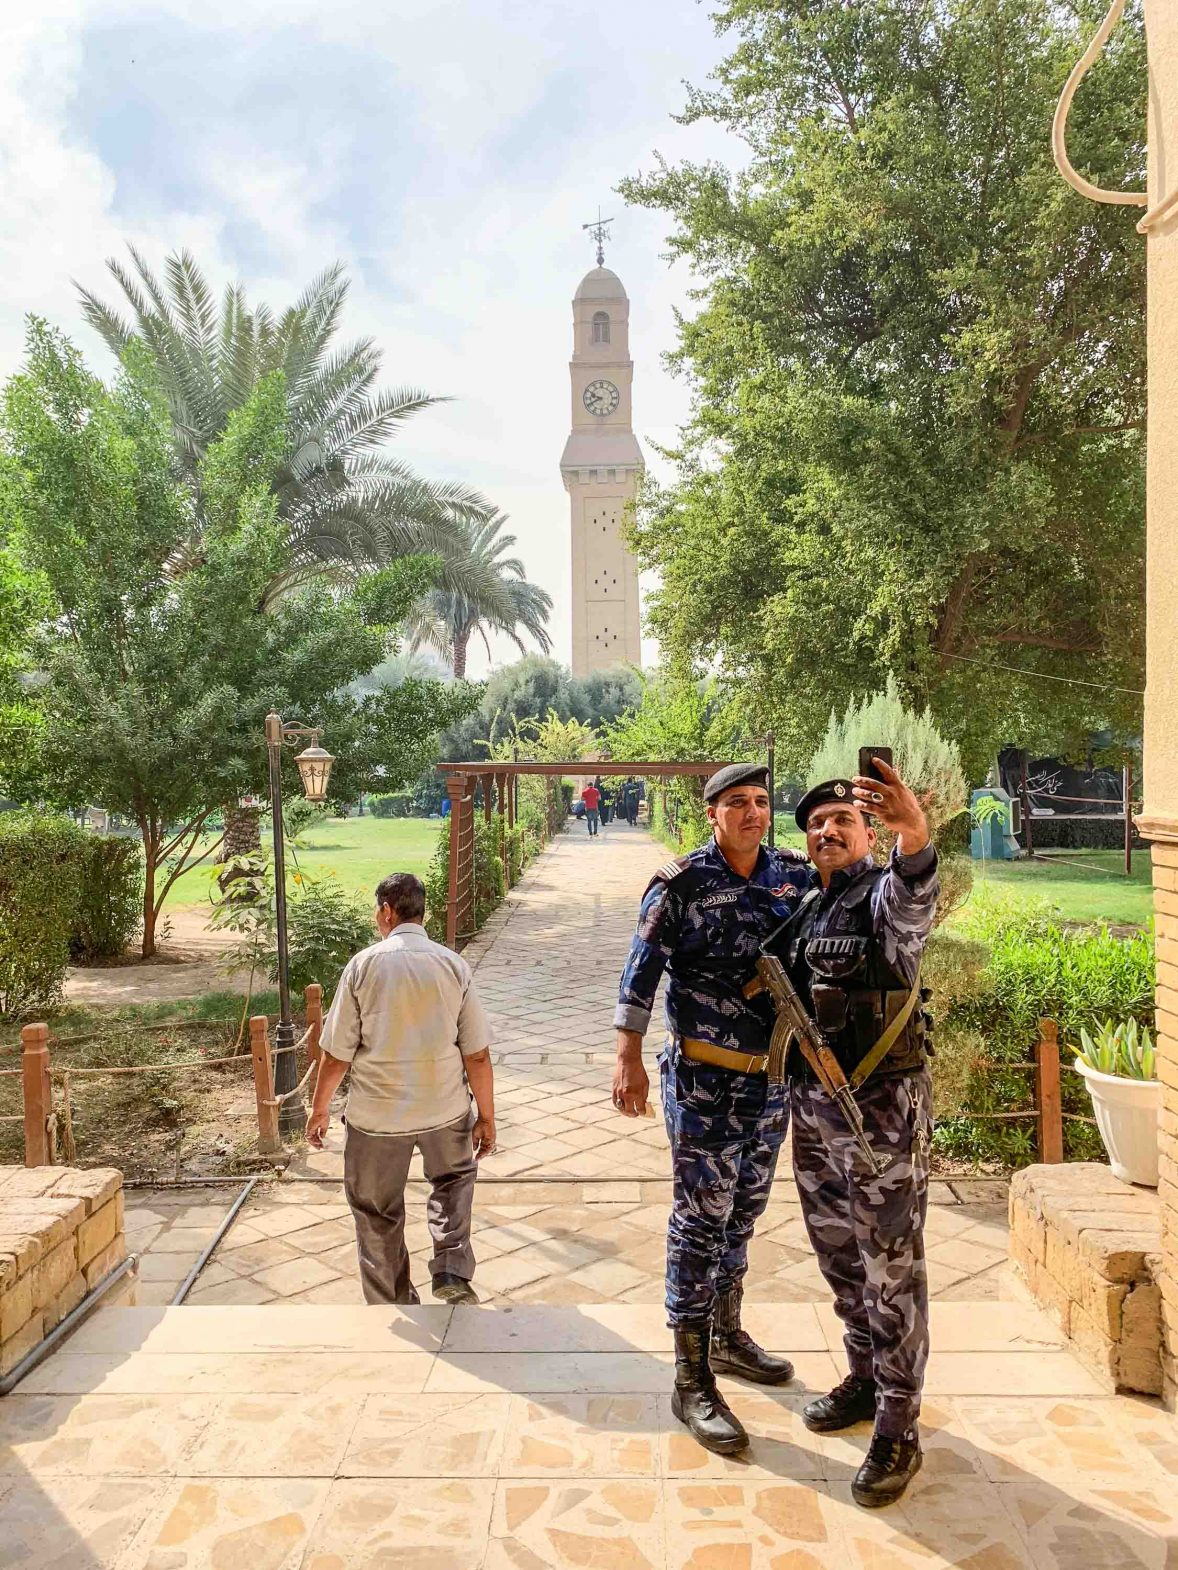 Police take a selfie in front of the Ottoman Clock in the Qishleh area of Iraq.